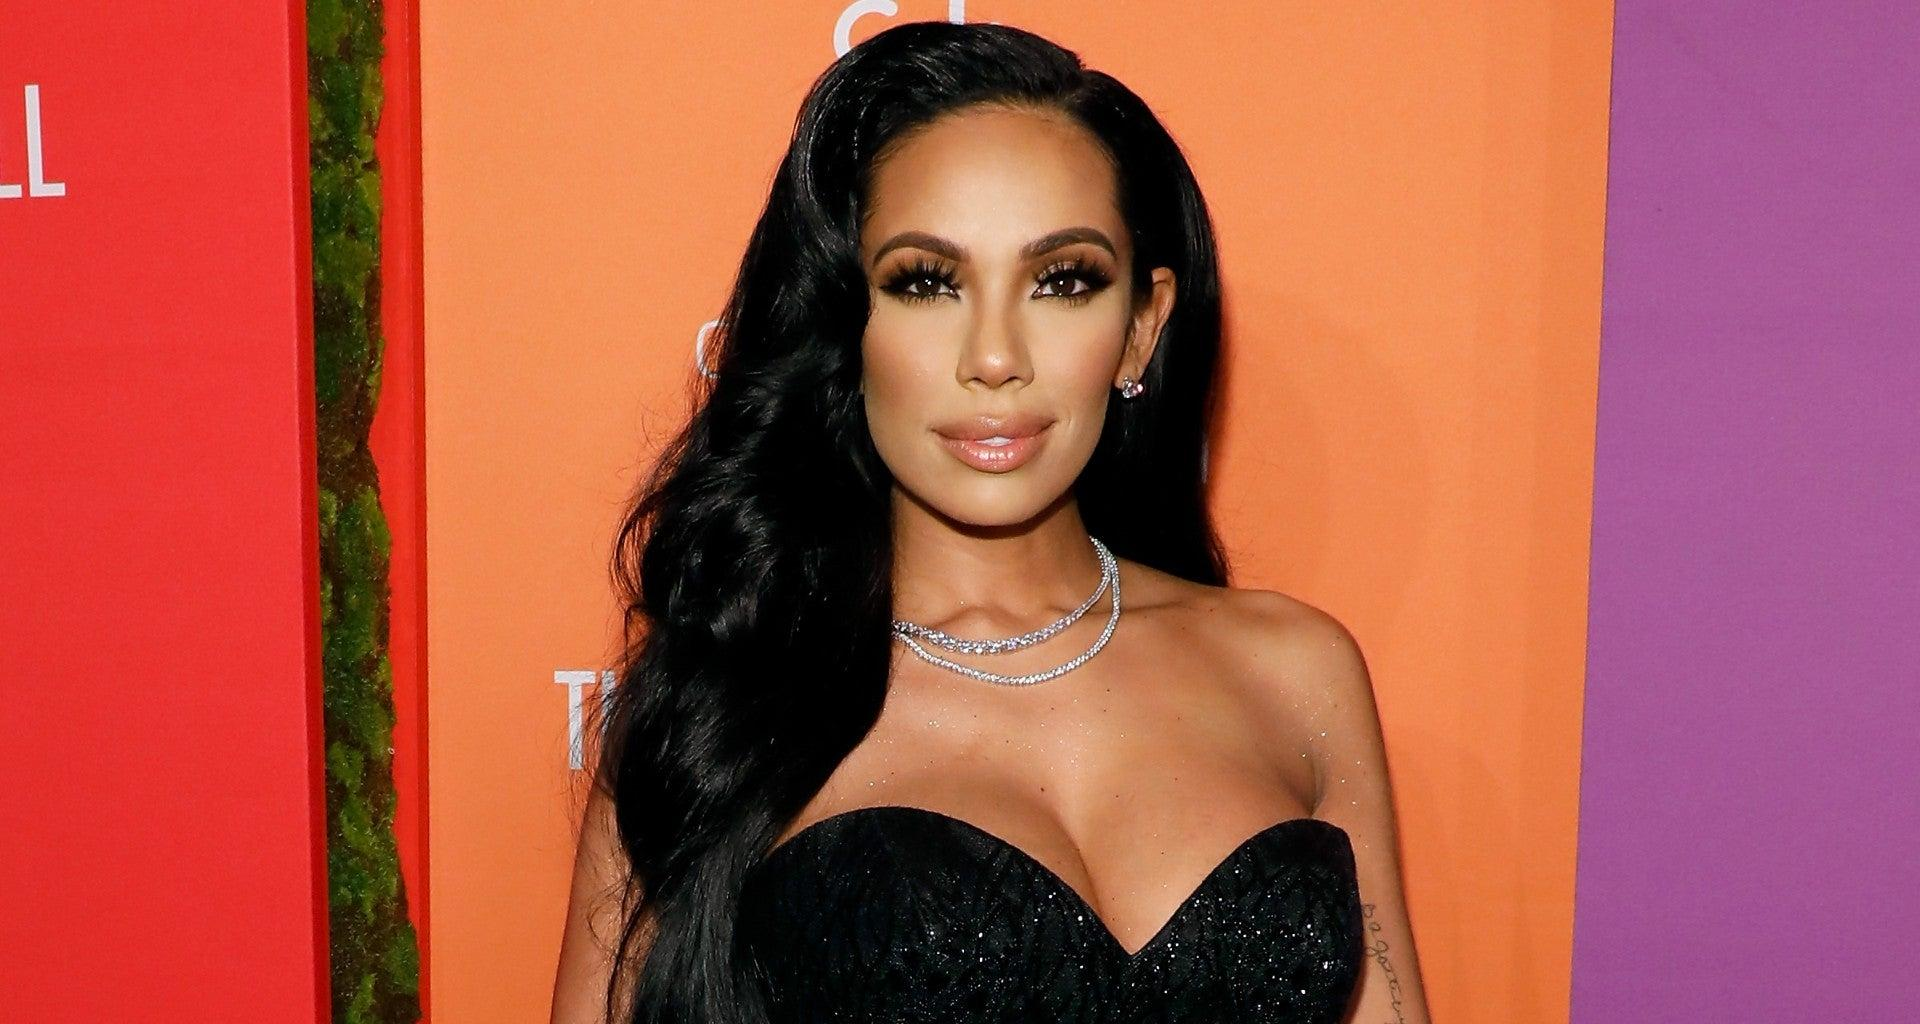 Erica Mena Reveals Fans What Gives Her 'Extra Battery' - Check Out The Video